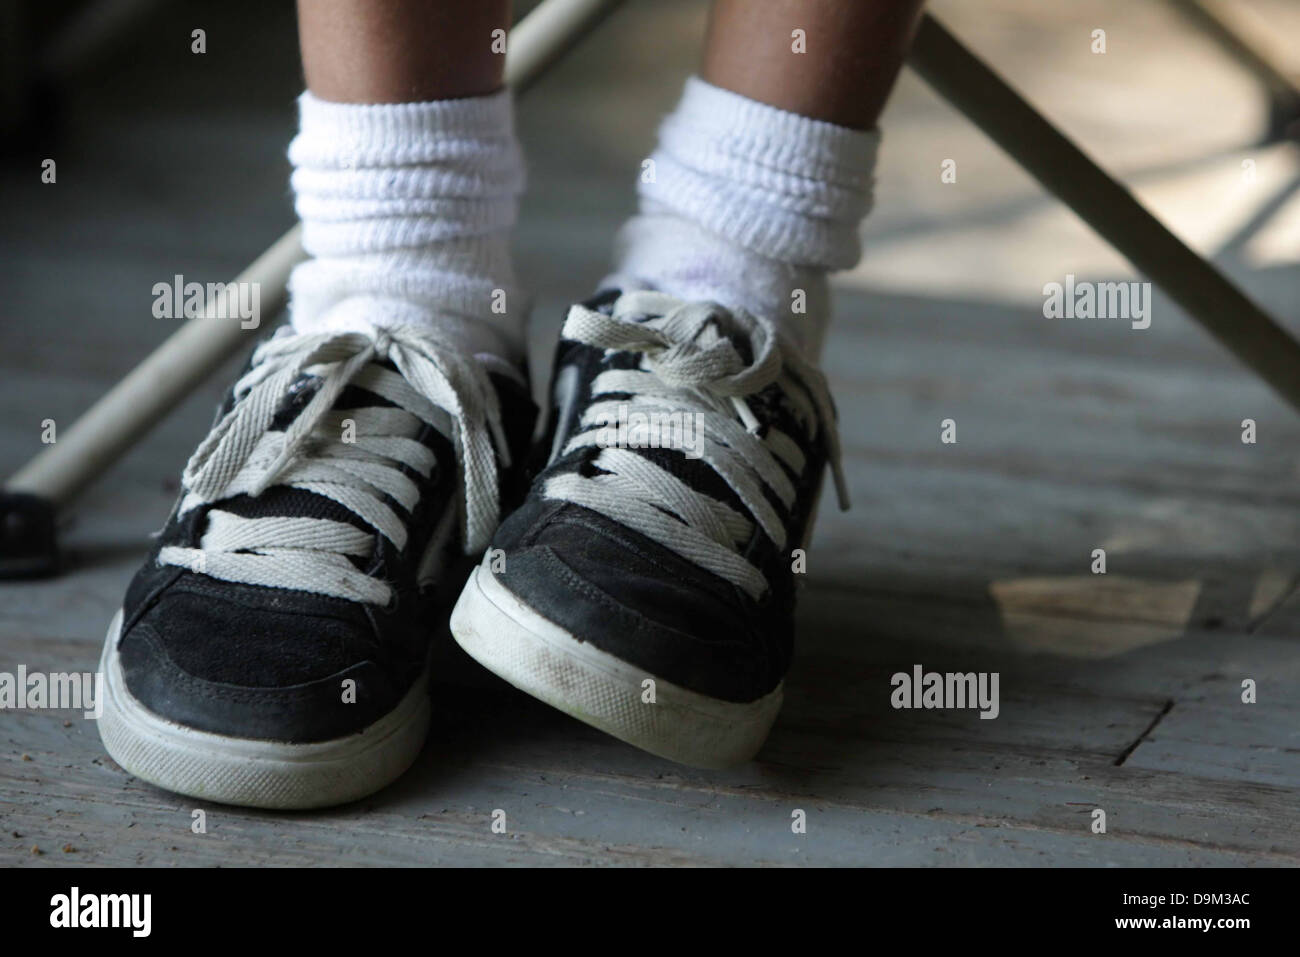 Child Kid Feet Only Wearing Black And White Sneakers Shoes